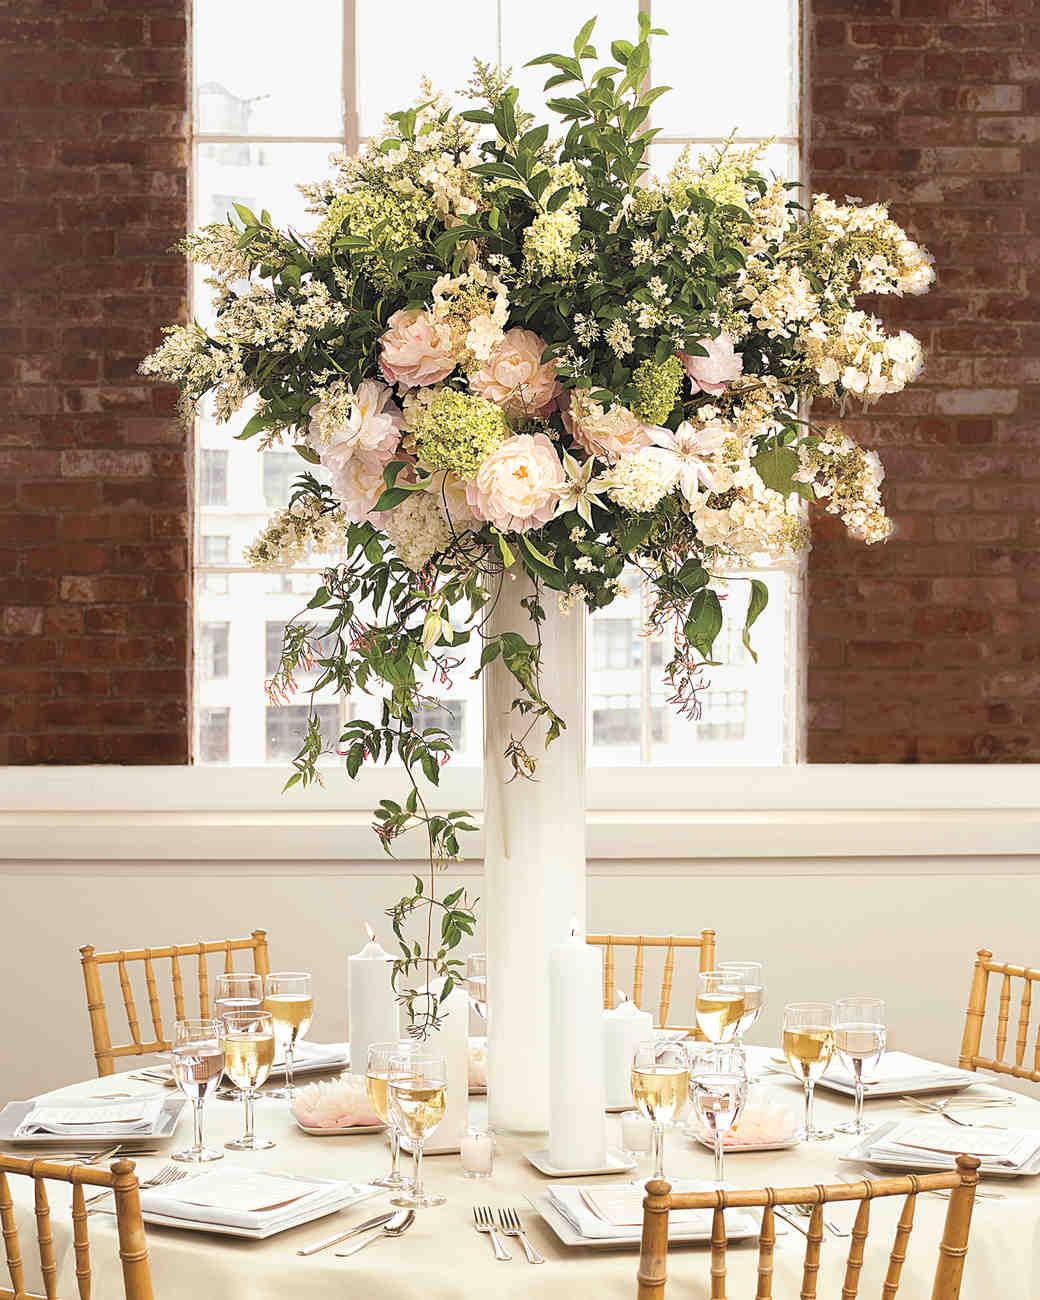 Pink Wedding Centerpiece Ideas: 37 Pink Wedding Centerpieces